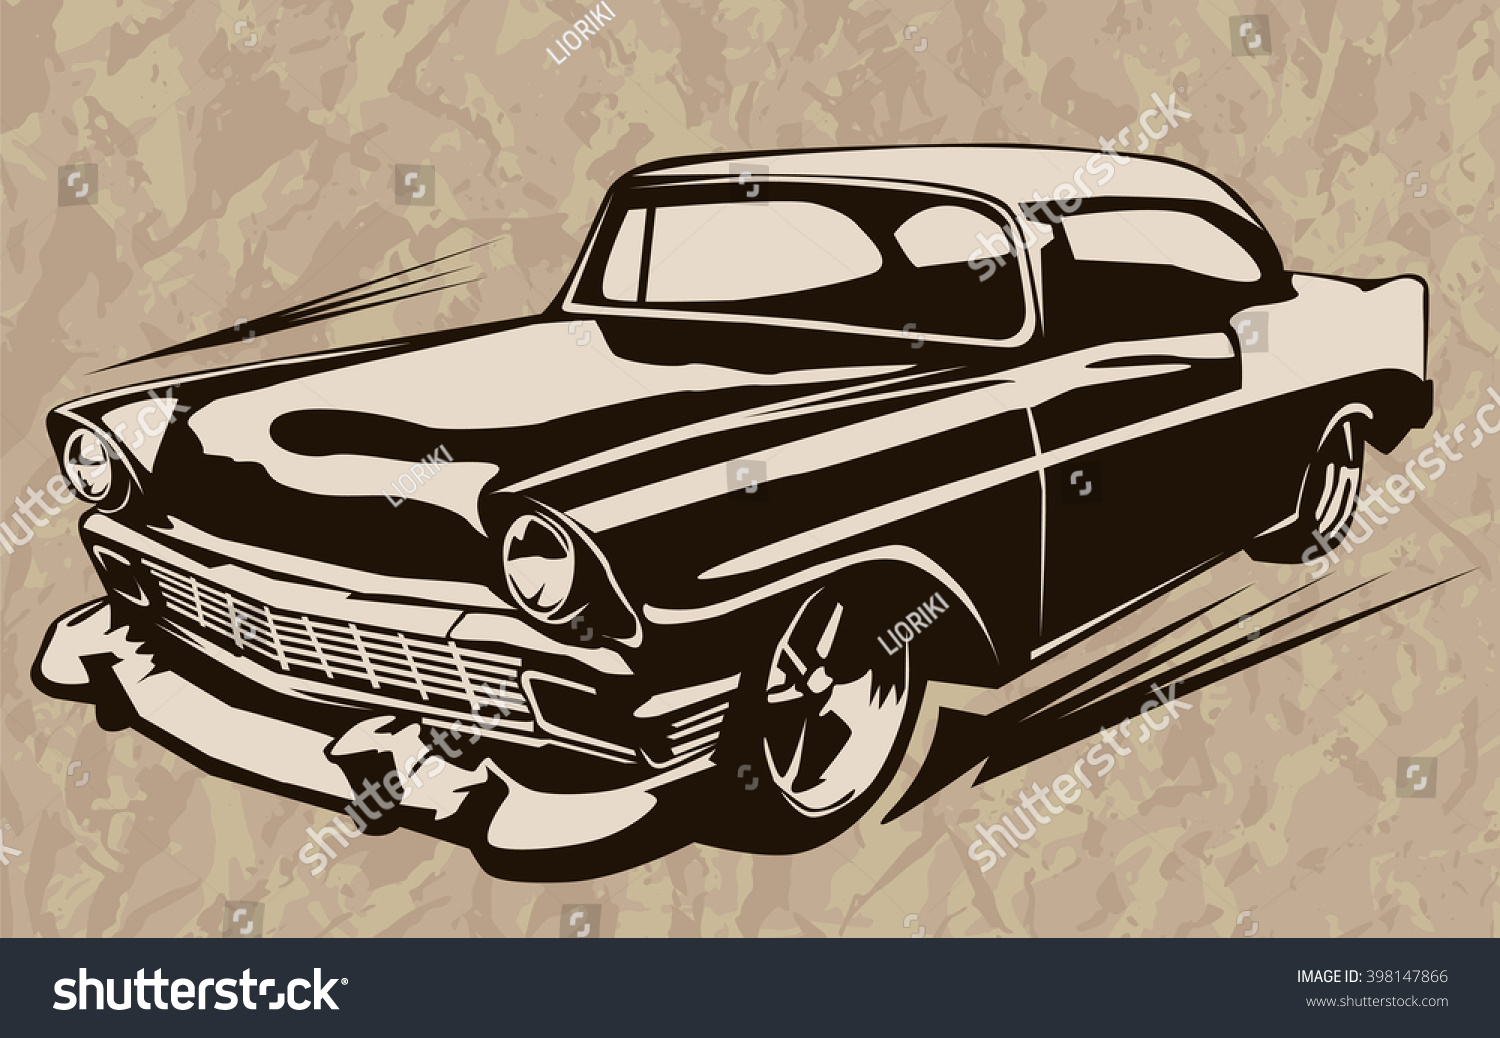 Vintage Muscle Cars Inspired Cartoon Sketch Stock Vector 398147866 ...